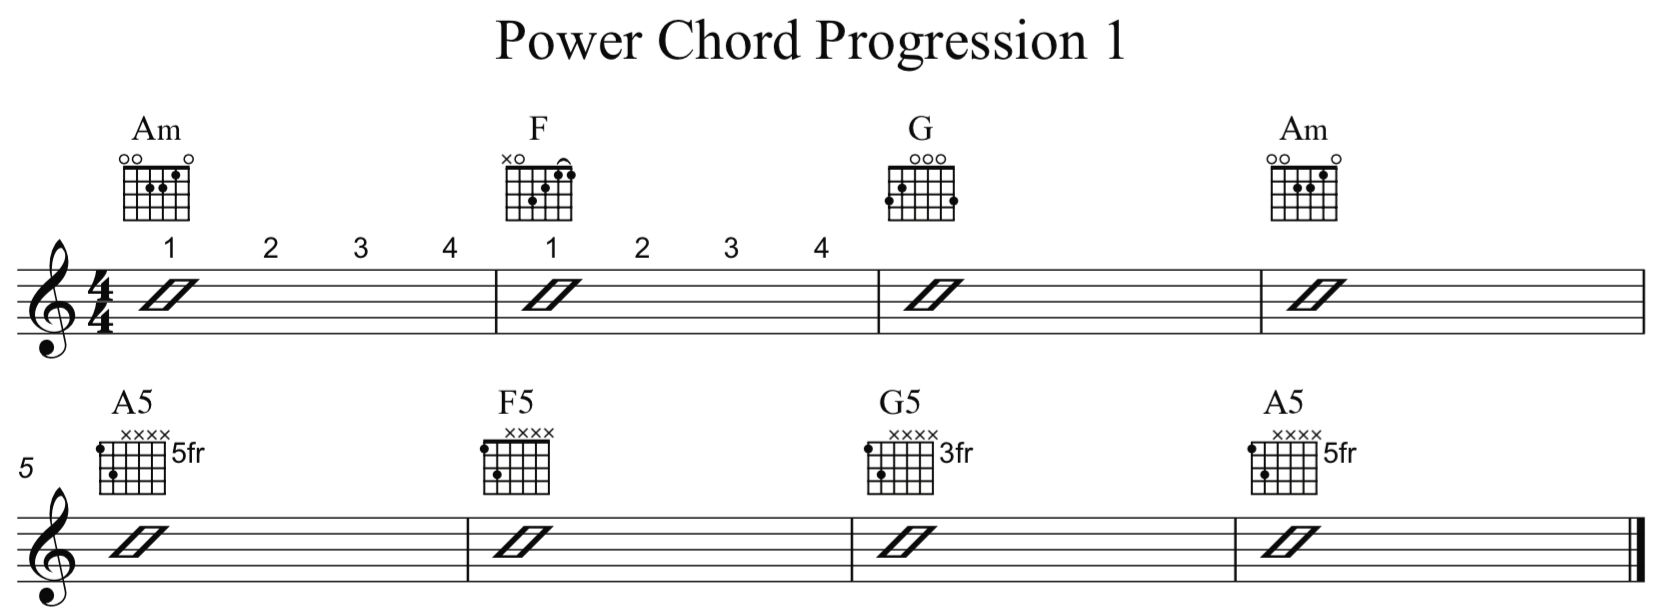 power-chord-progression-1.png